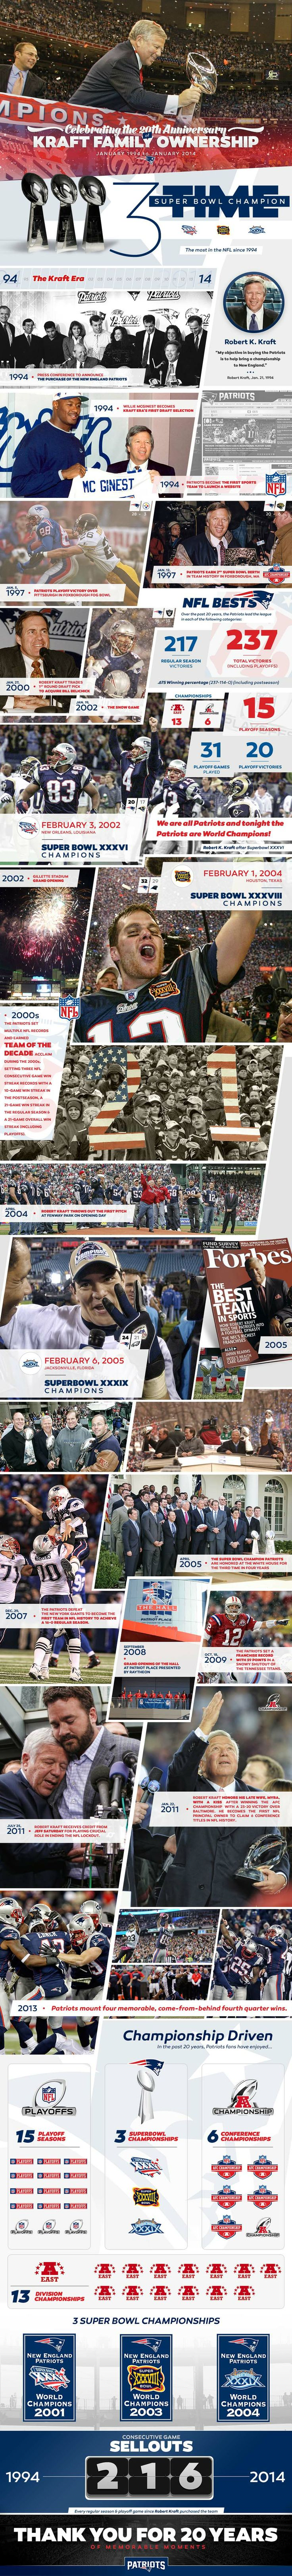 New England Patriots: 20 Years of Kraft Family Ownership